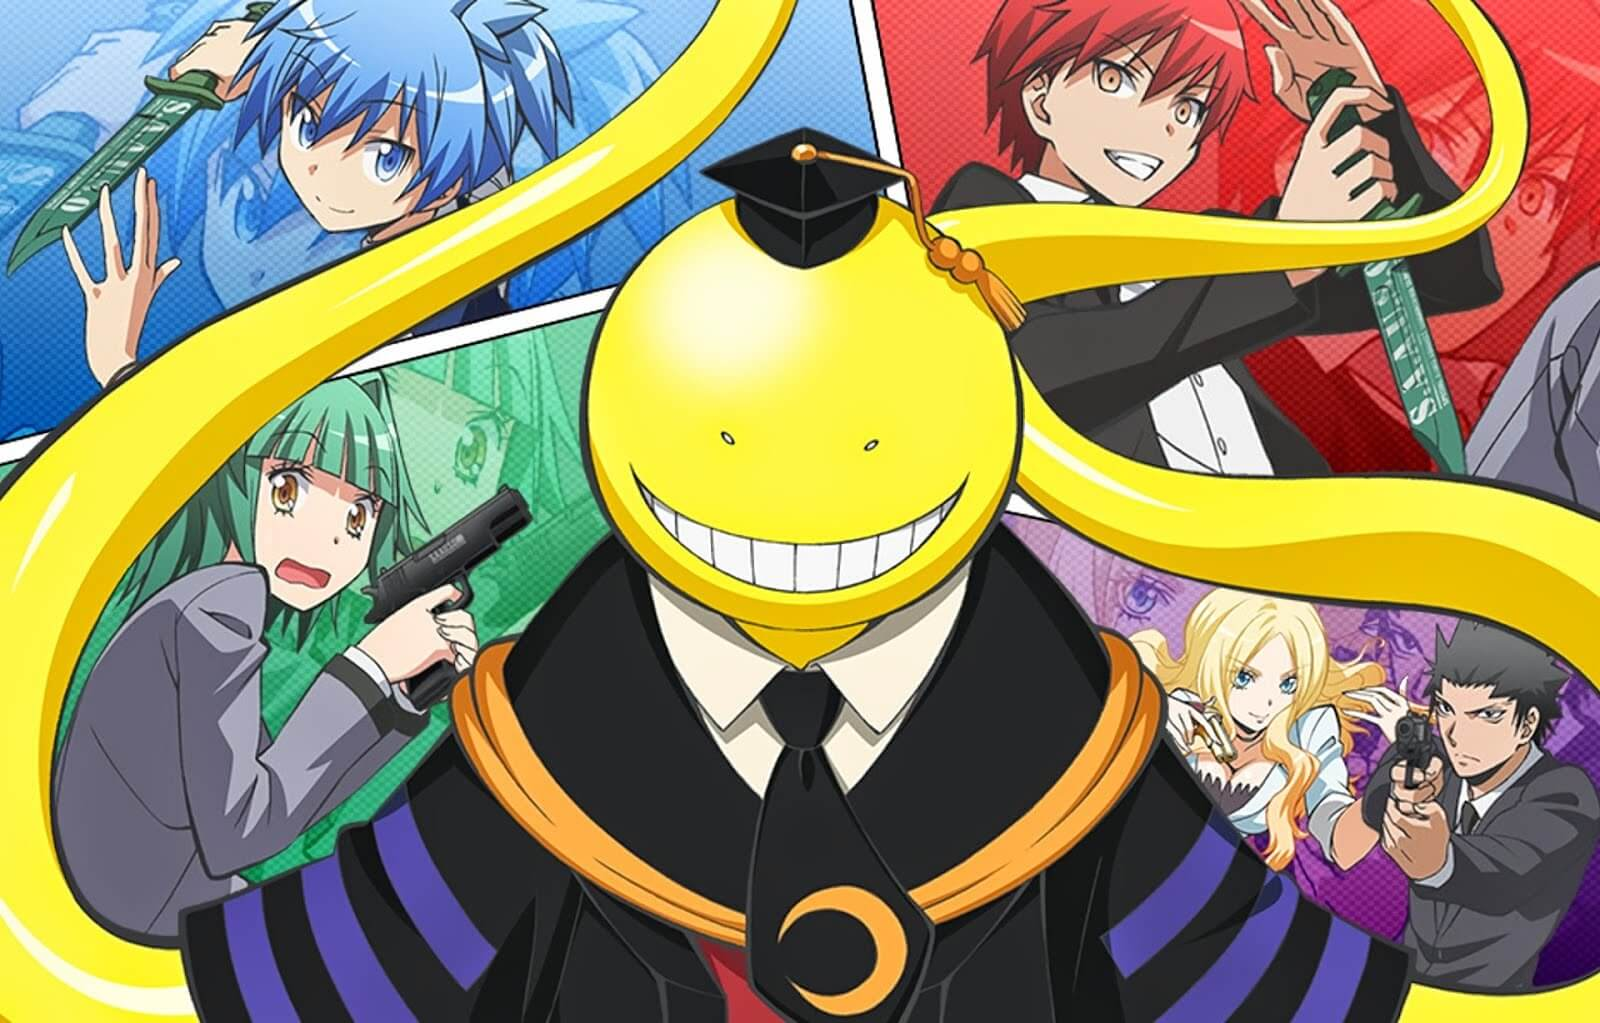 Descargar Assassination Classroom Primera Temporada anime subtitulado en español